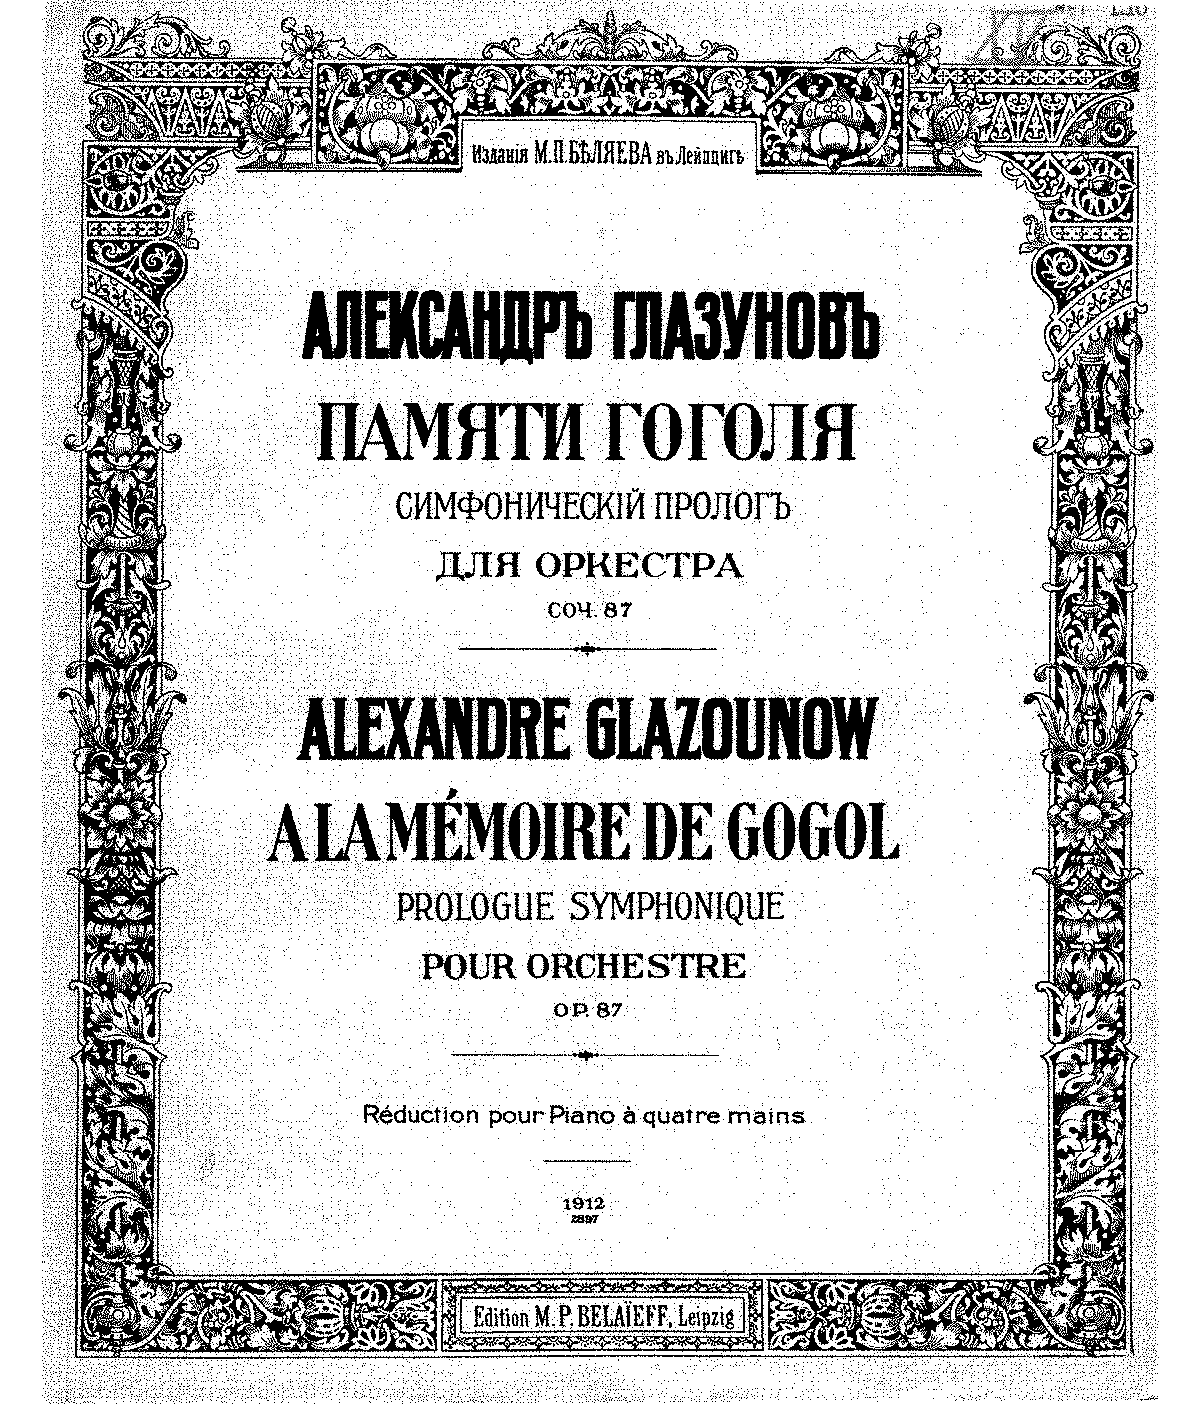 Glazunov - Op.87 - To the Memory of Gogol, symphonic prologue in C major (4H).pdf